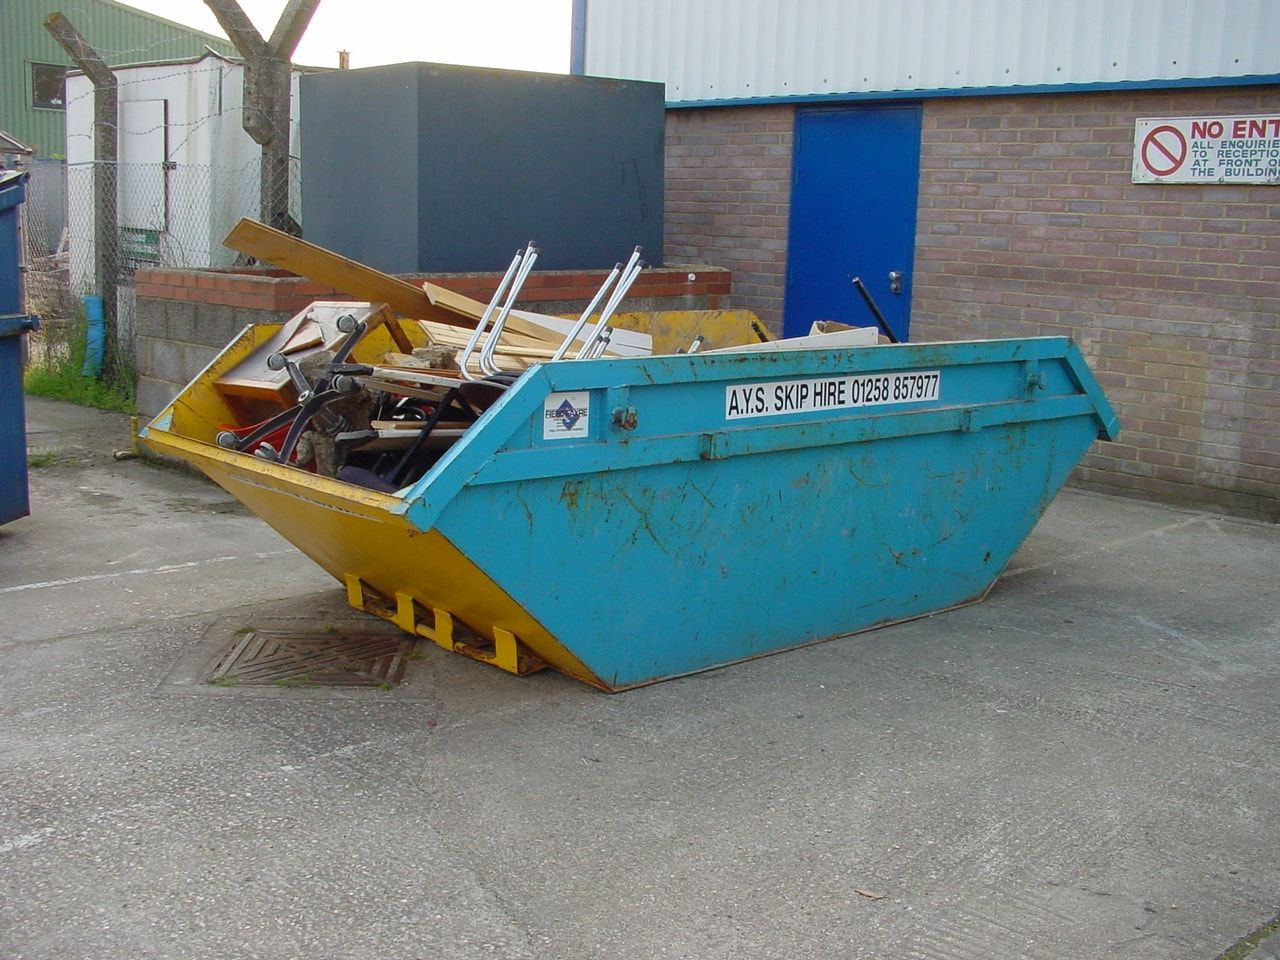 AYS Skip Hire waste removal